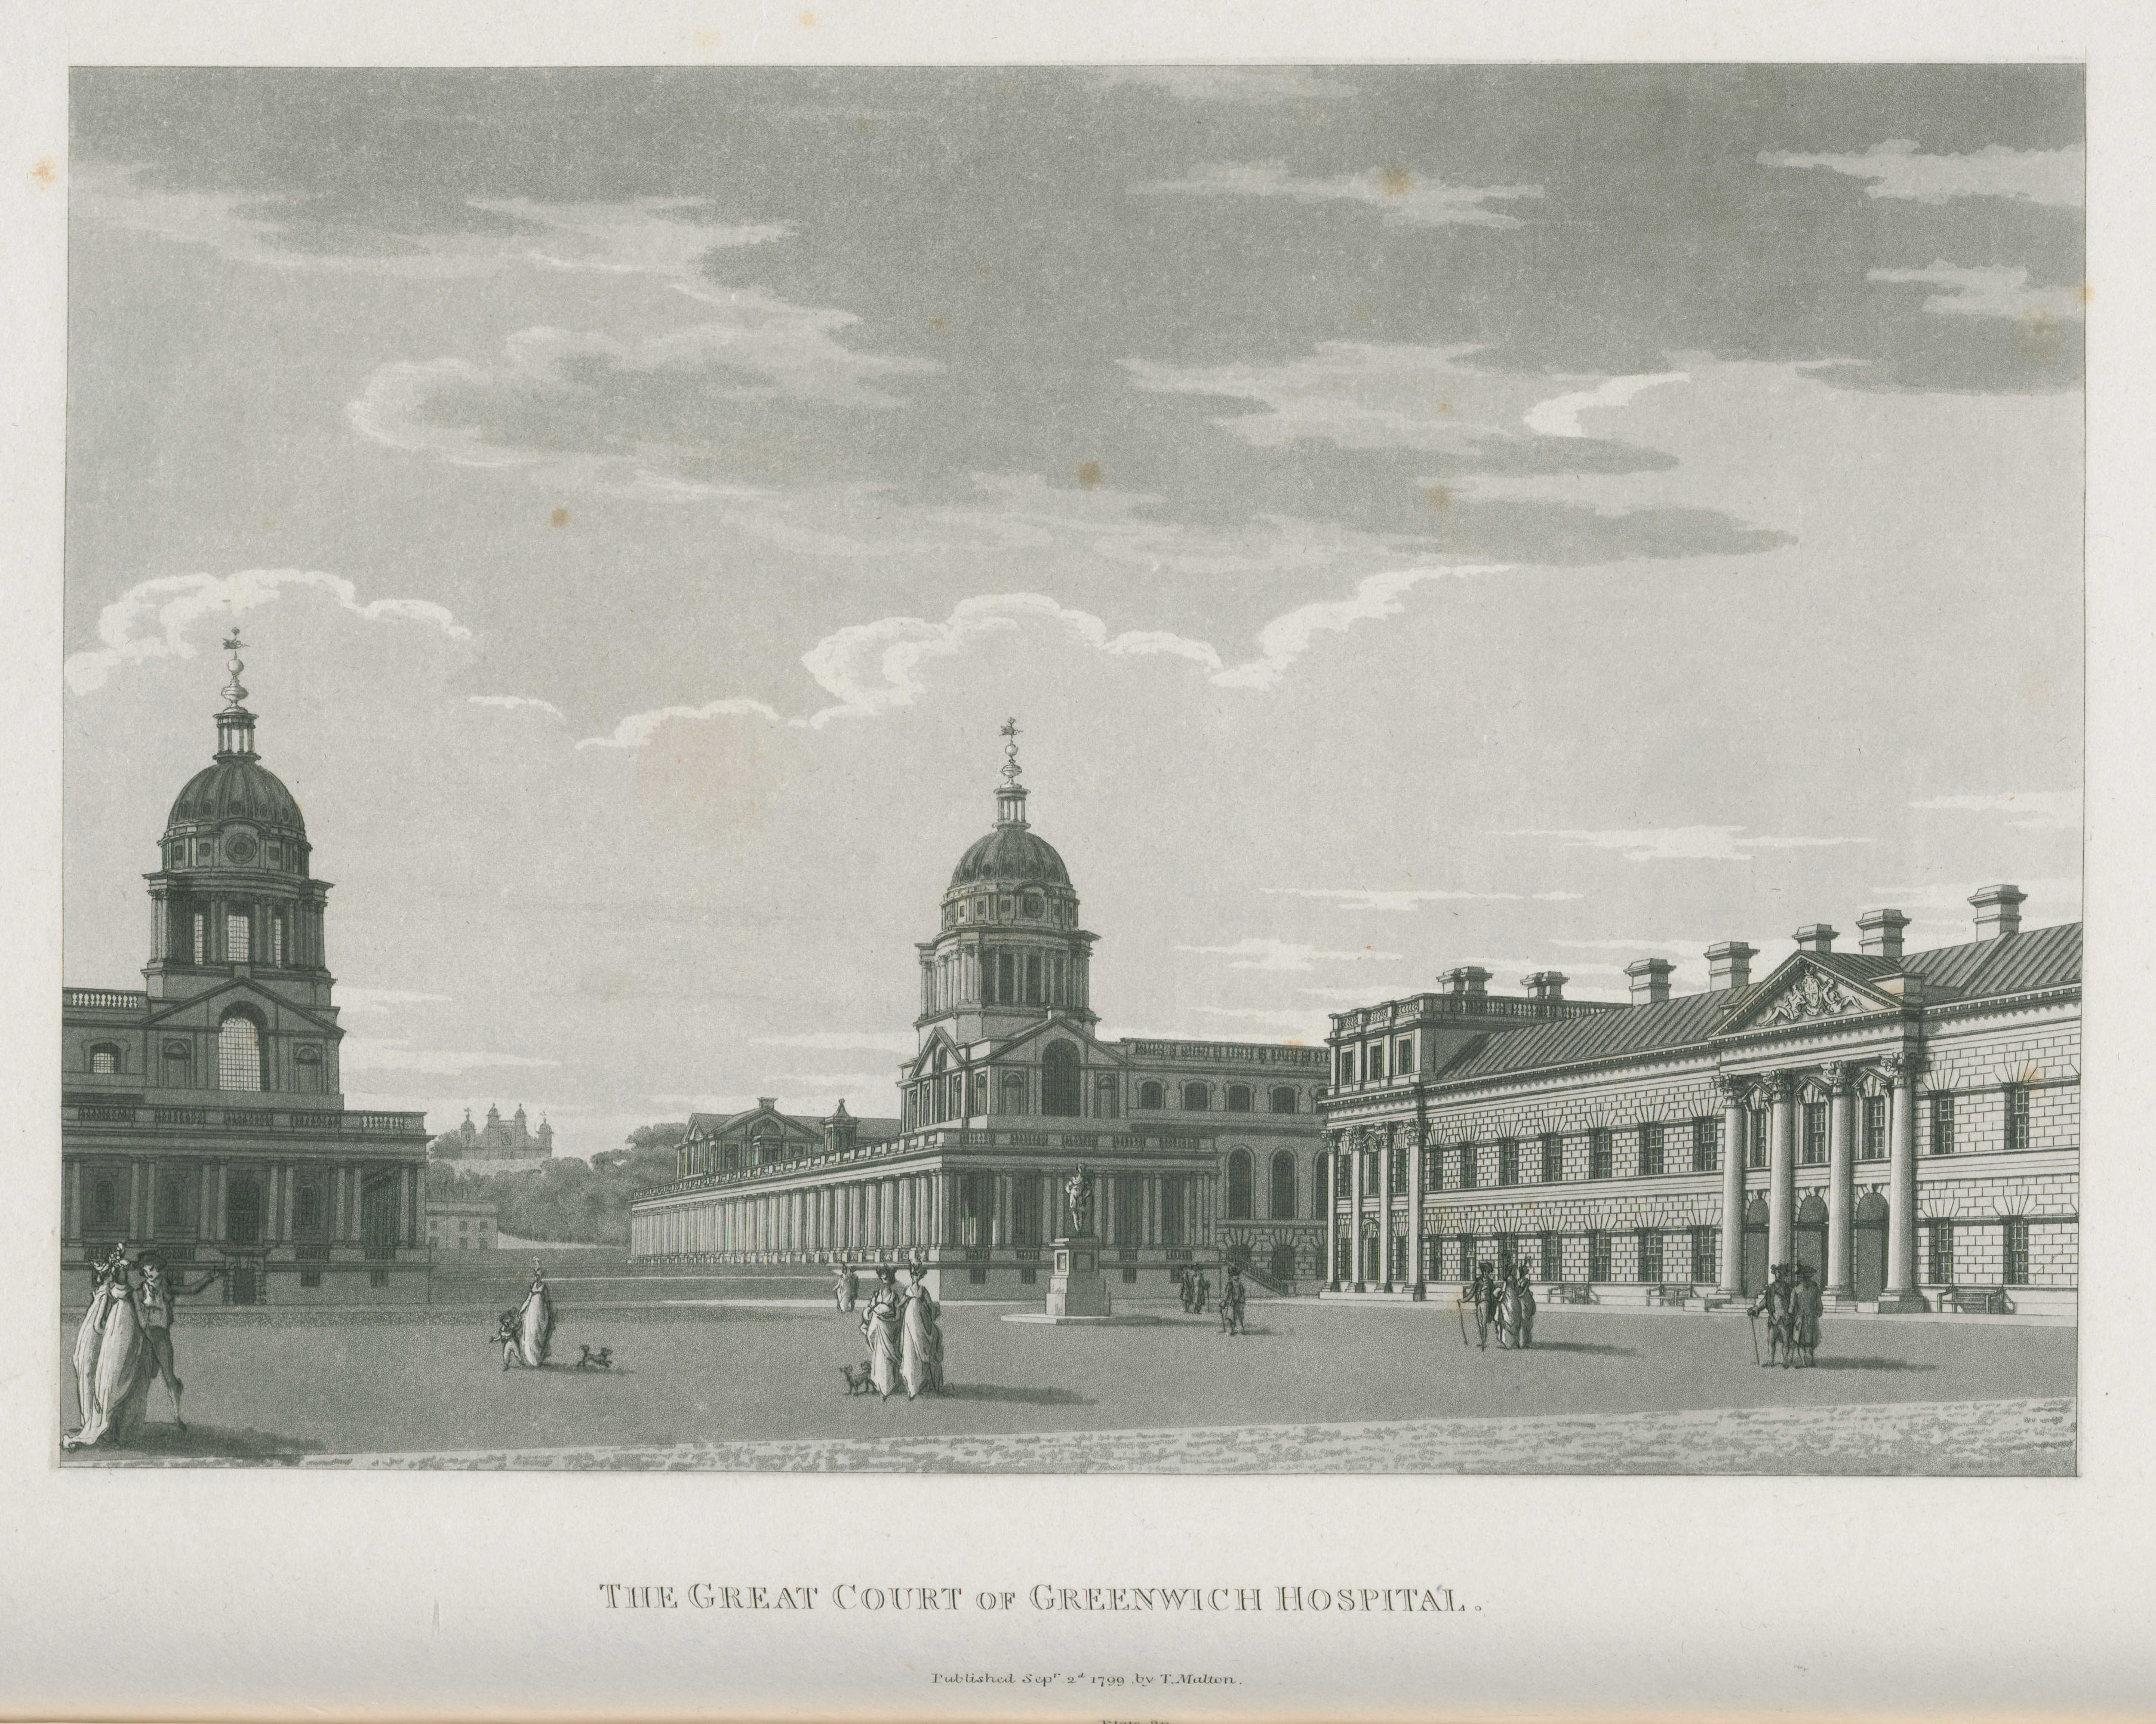 080 - Malton - The Great Court of Greenwich Hospital